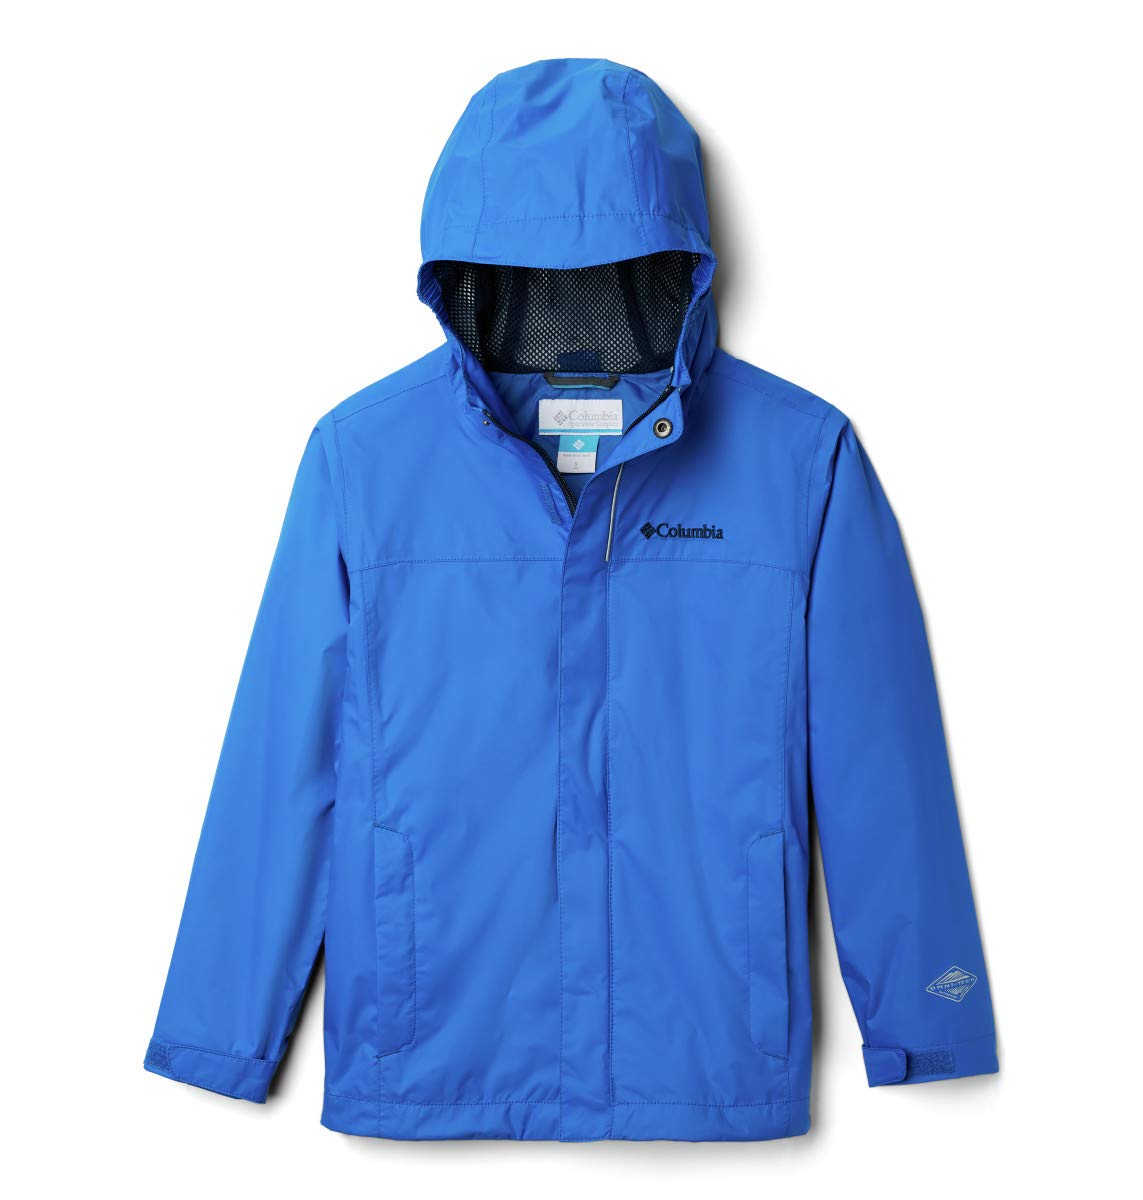 Columbia Boys' Little Watertight Jacket, Super Blue, Small